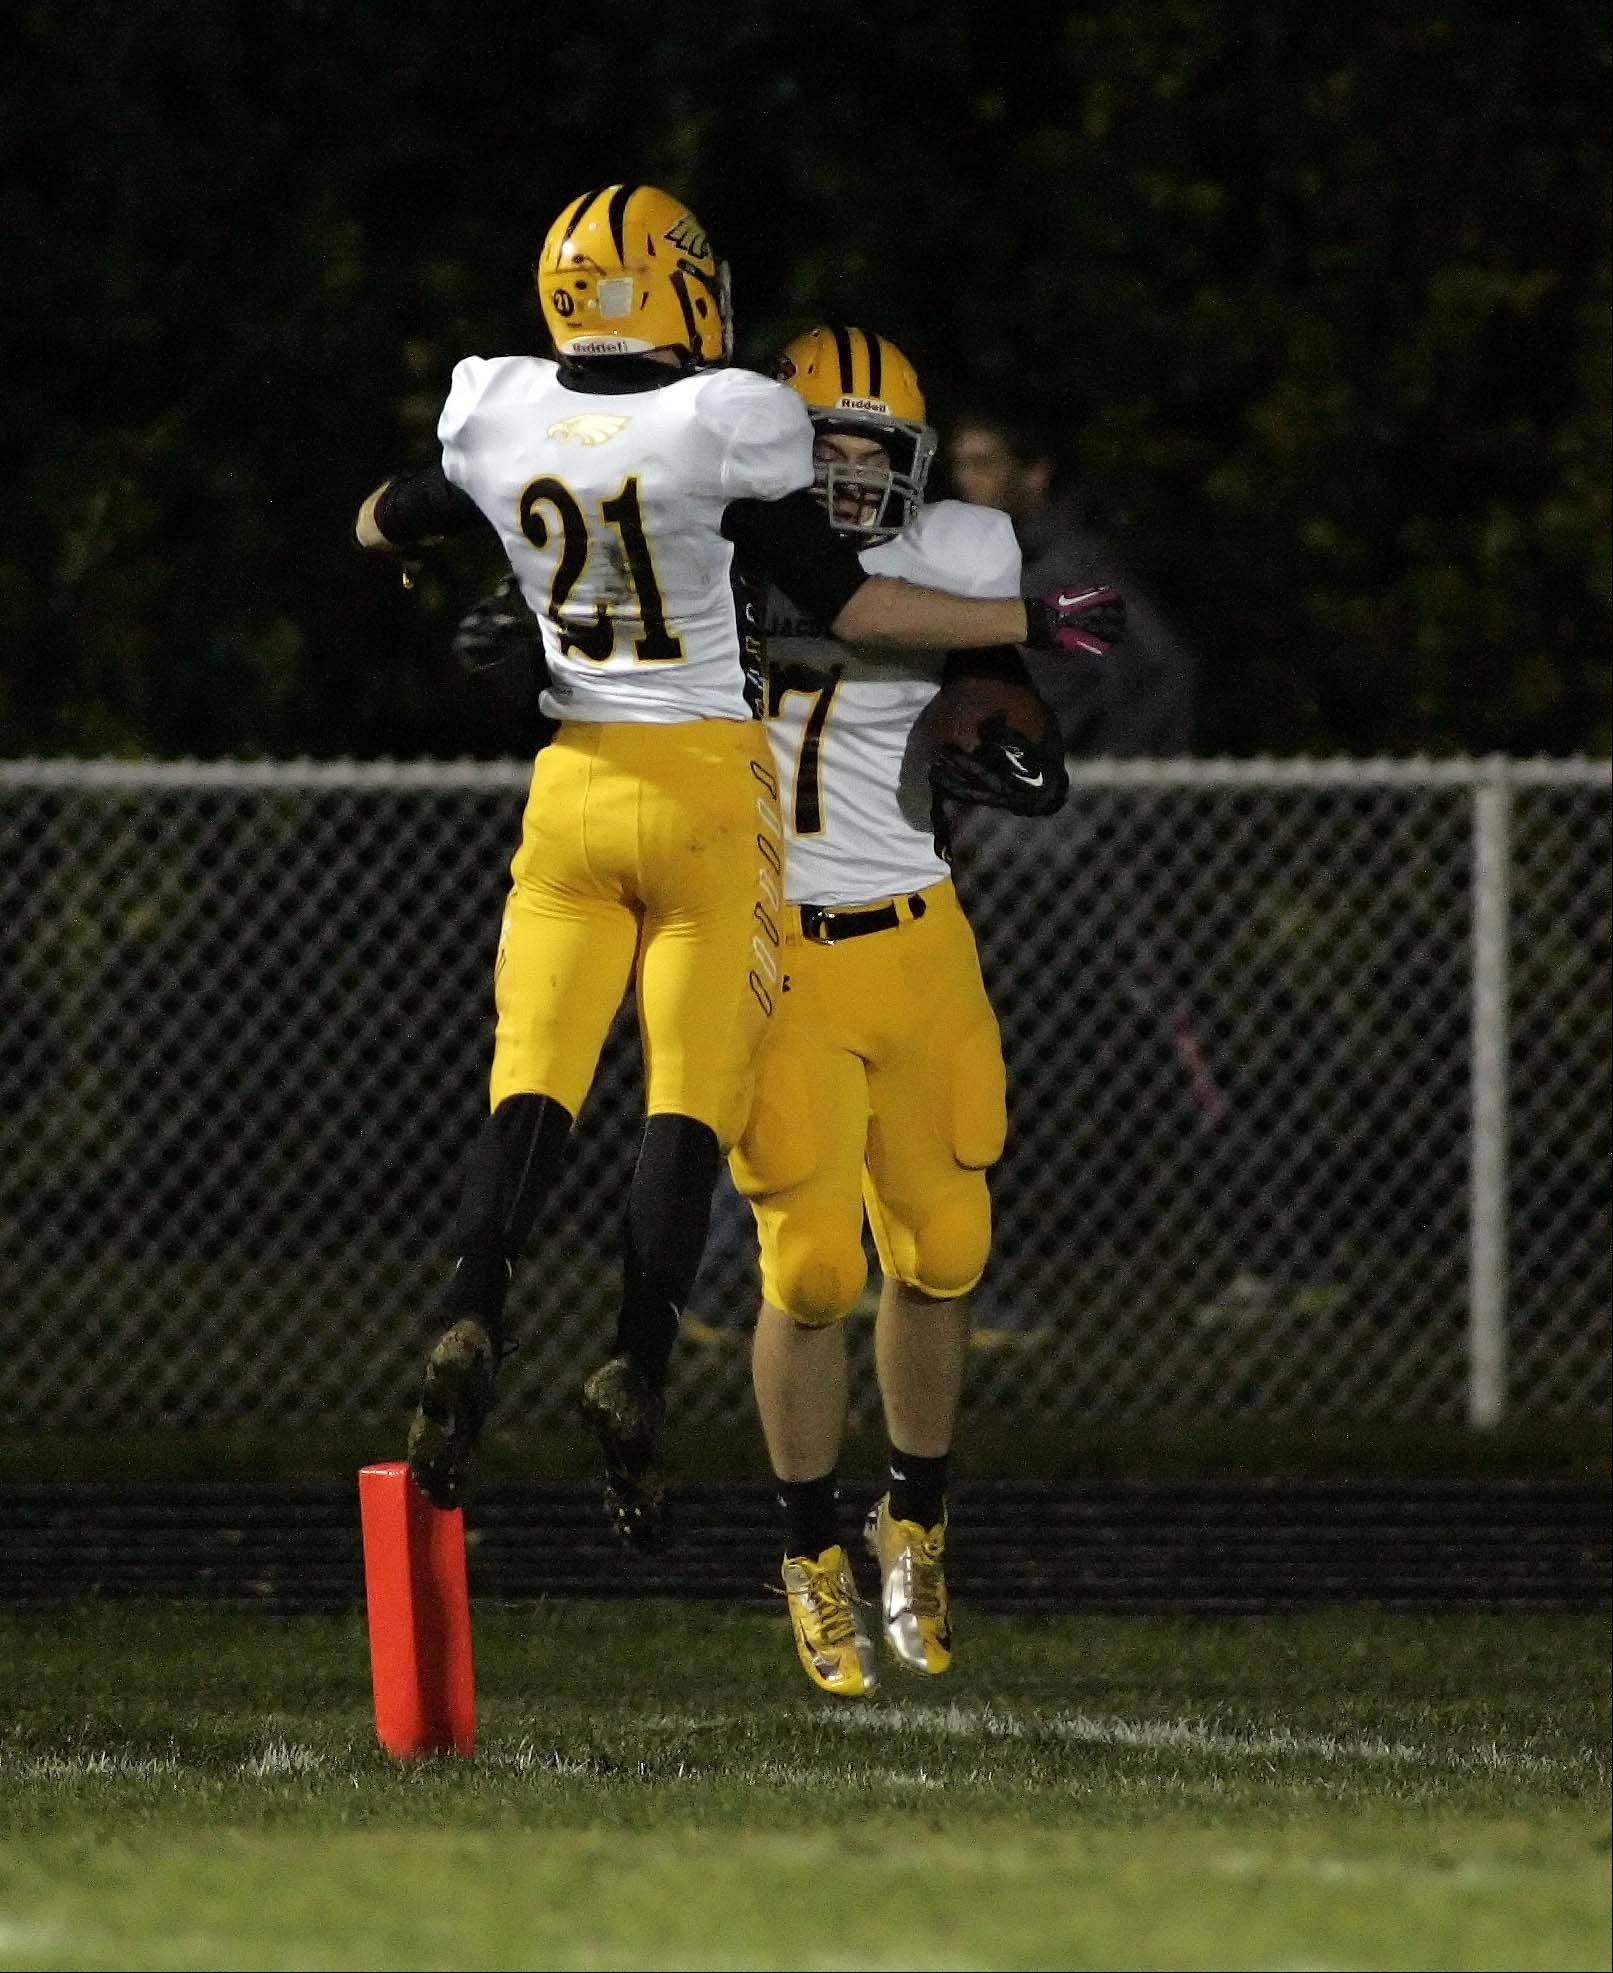 Jacobs' Hunter Williams greets Jake Gierlak in the end zone after a touchdown.